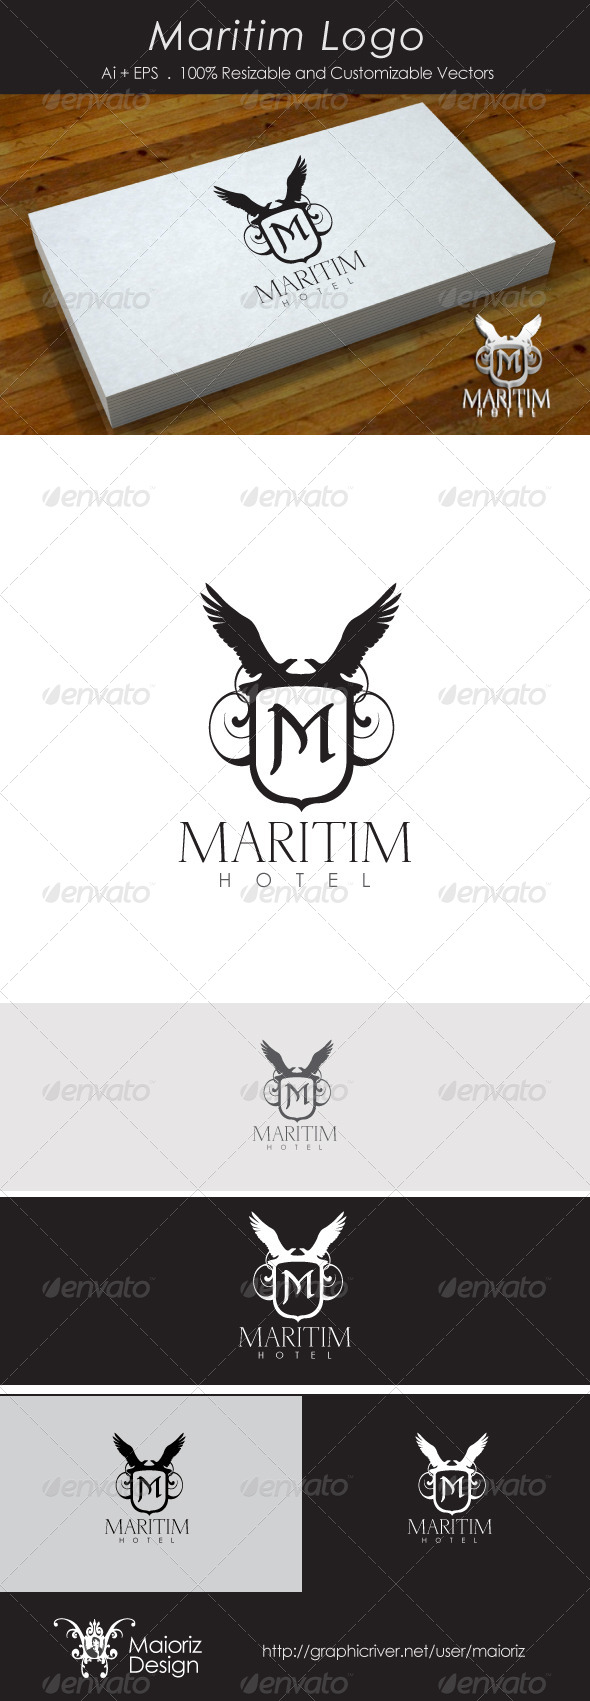 GraphicRiver Maritim Logotype 4065224